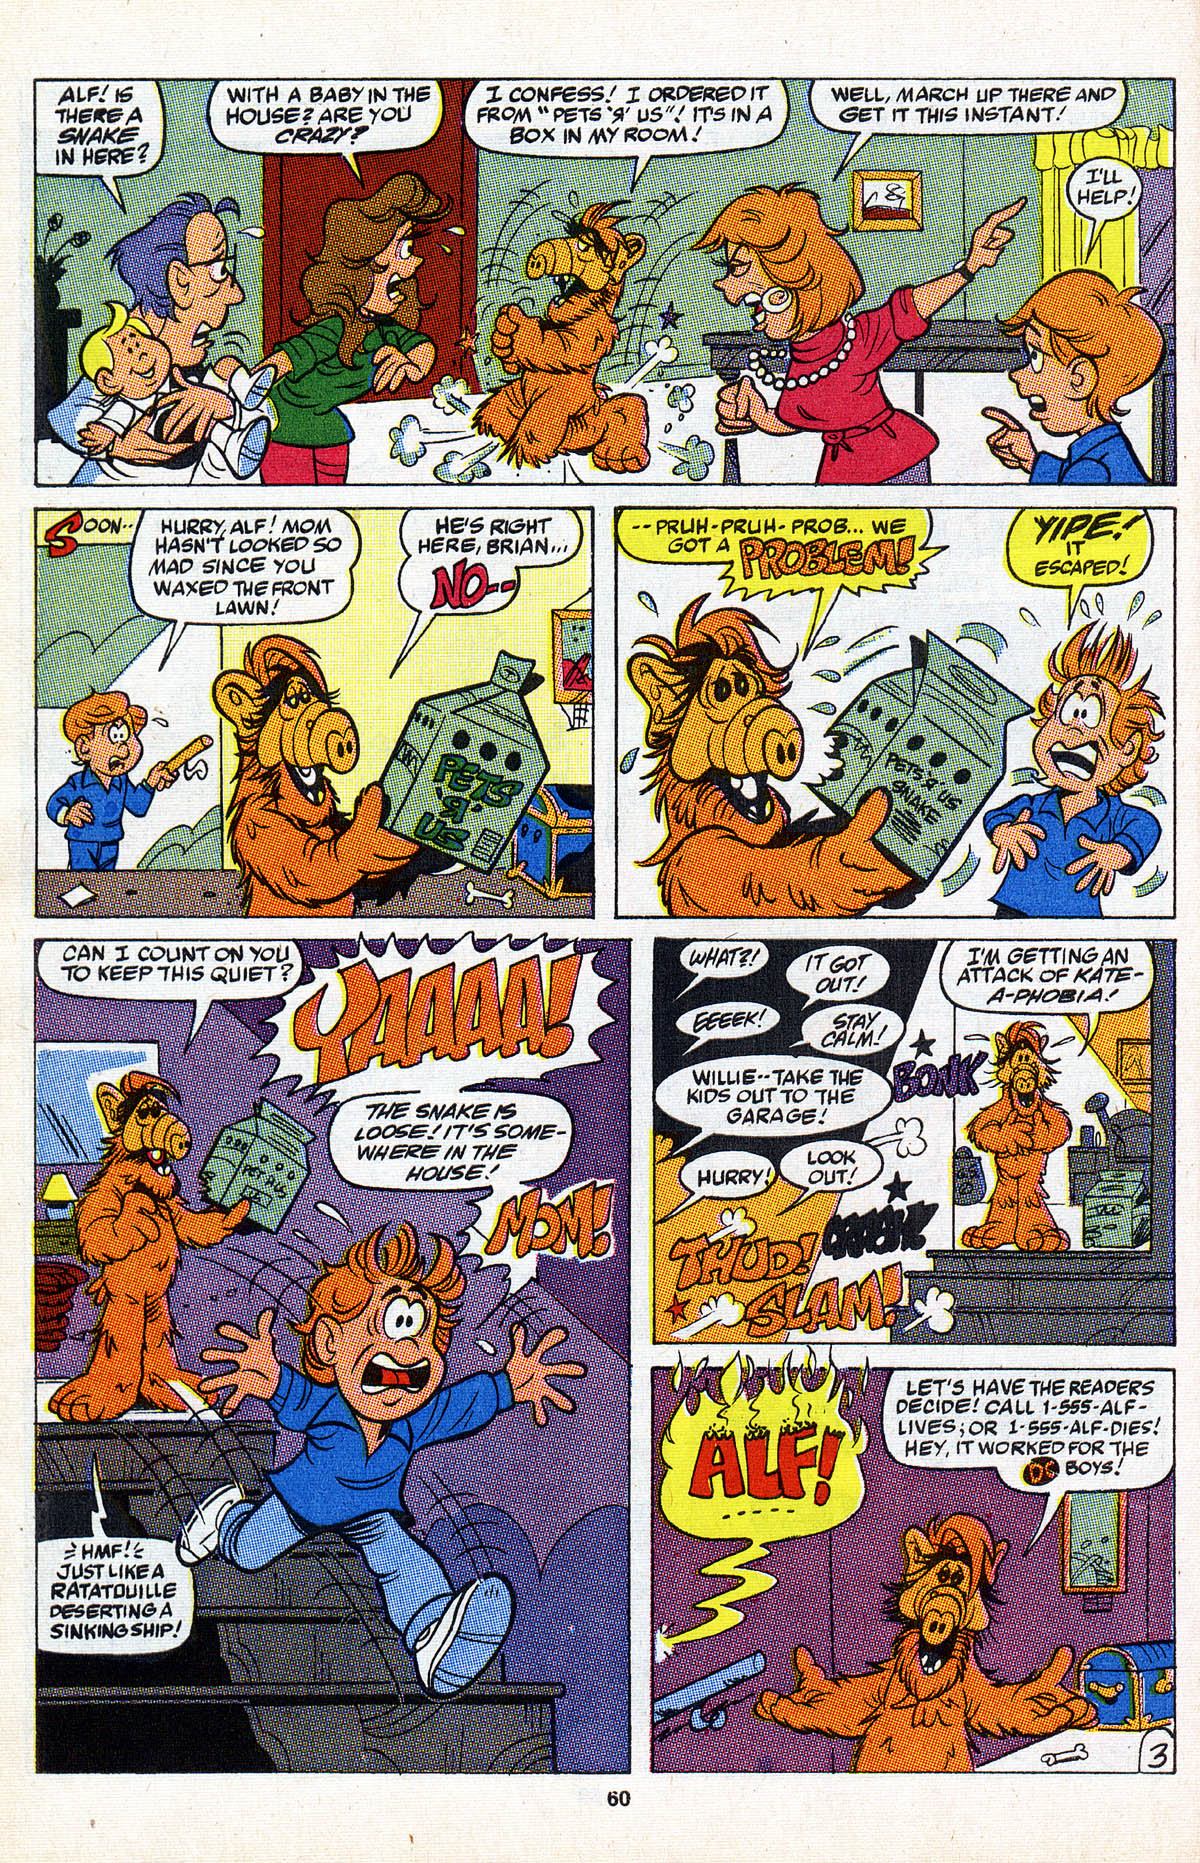 Read online ALF comic -  Issue #2 - 61